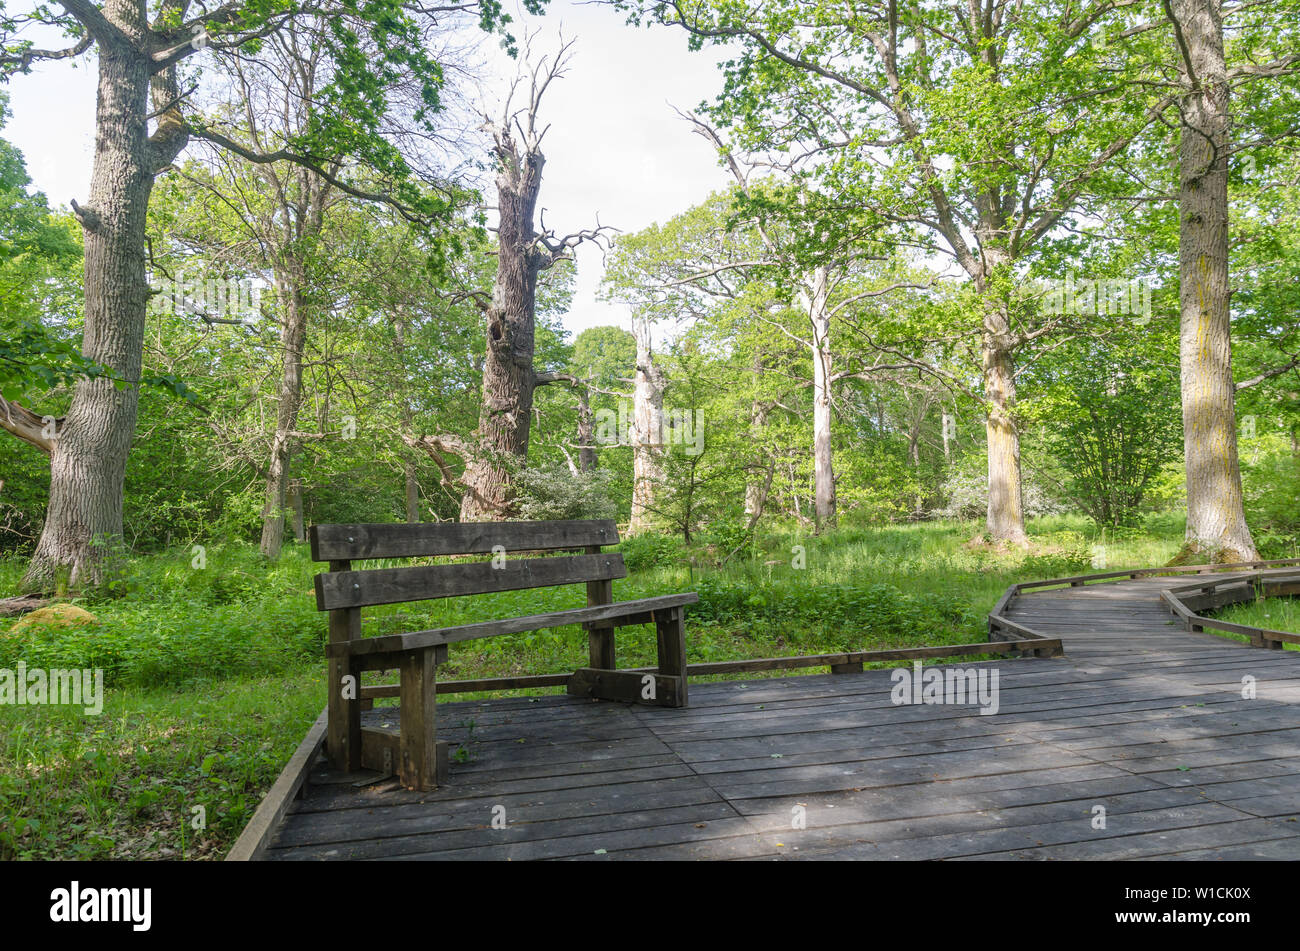 Bench by a wooden footpath in the nature reserve Halltorps Hage with old oak trees on the swedish island Oland Stock Photo